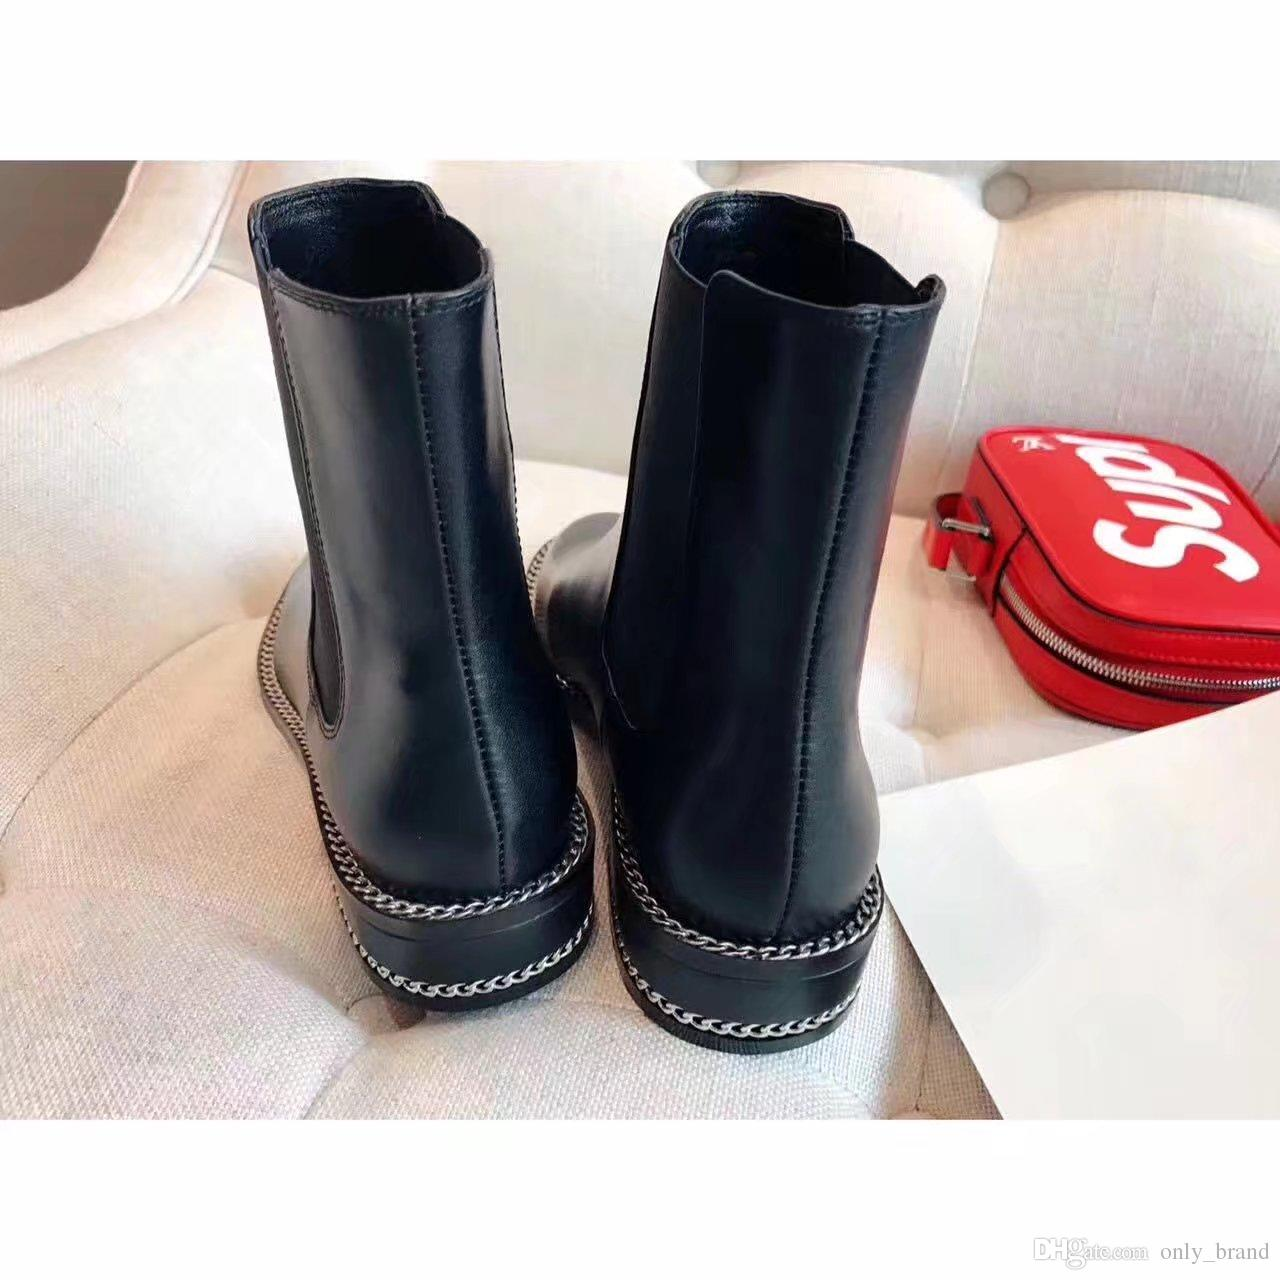 New Arrival Fall Winter Moto Booties Women Flats With Chains Black Color Ladies Western Boots